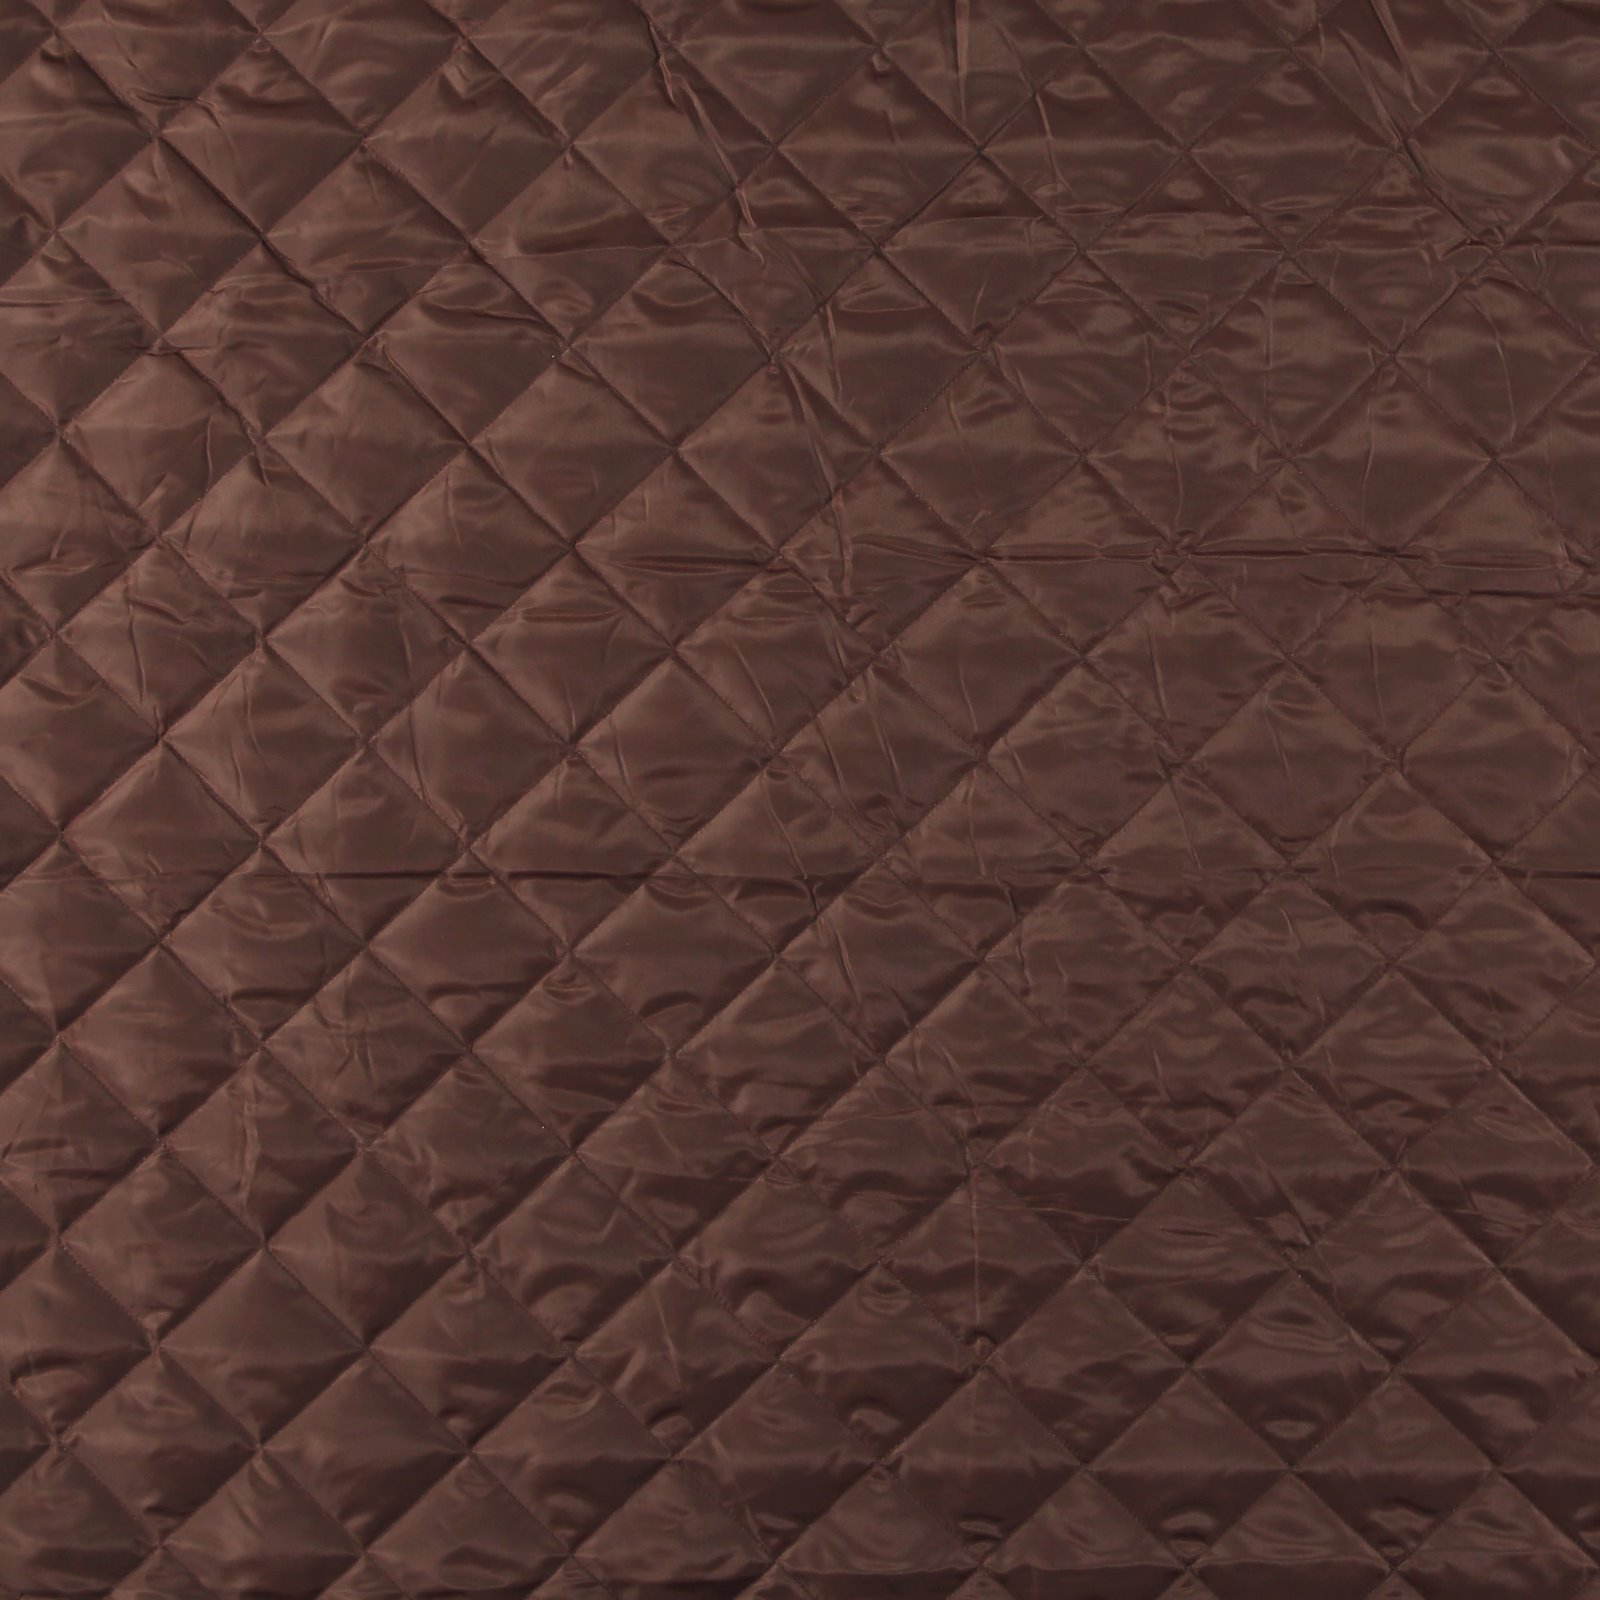 Woven quilt chestnut brown with lining 920234_pack_sp